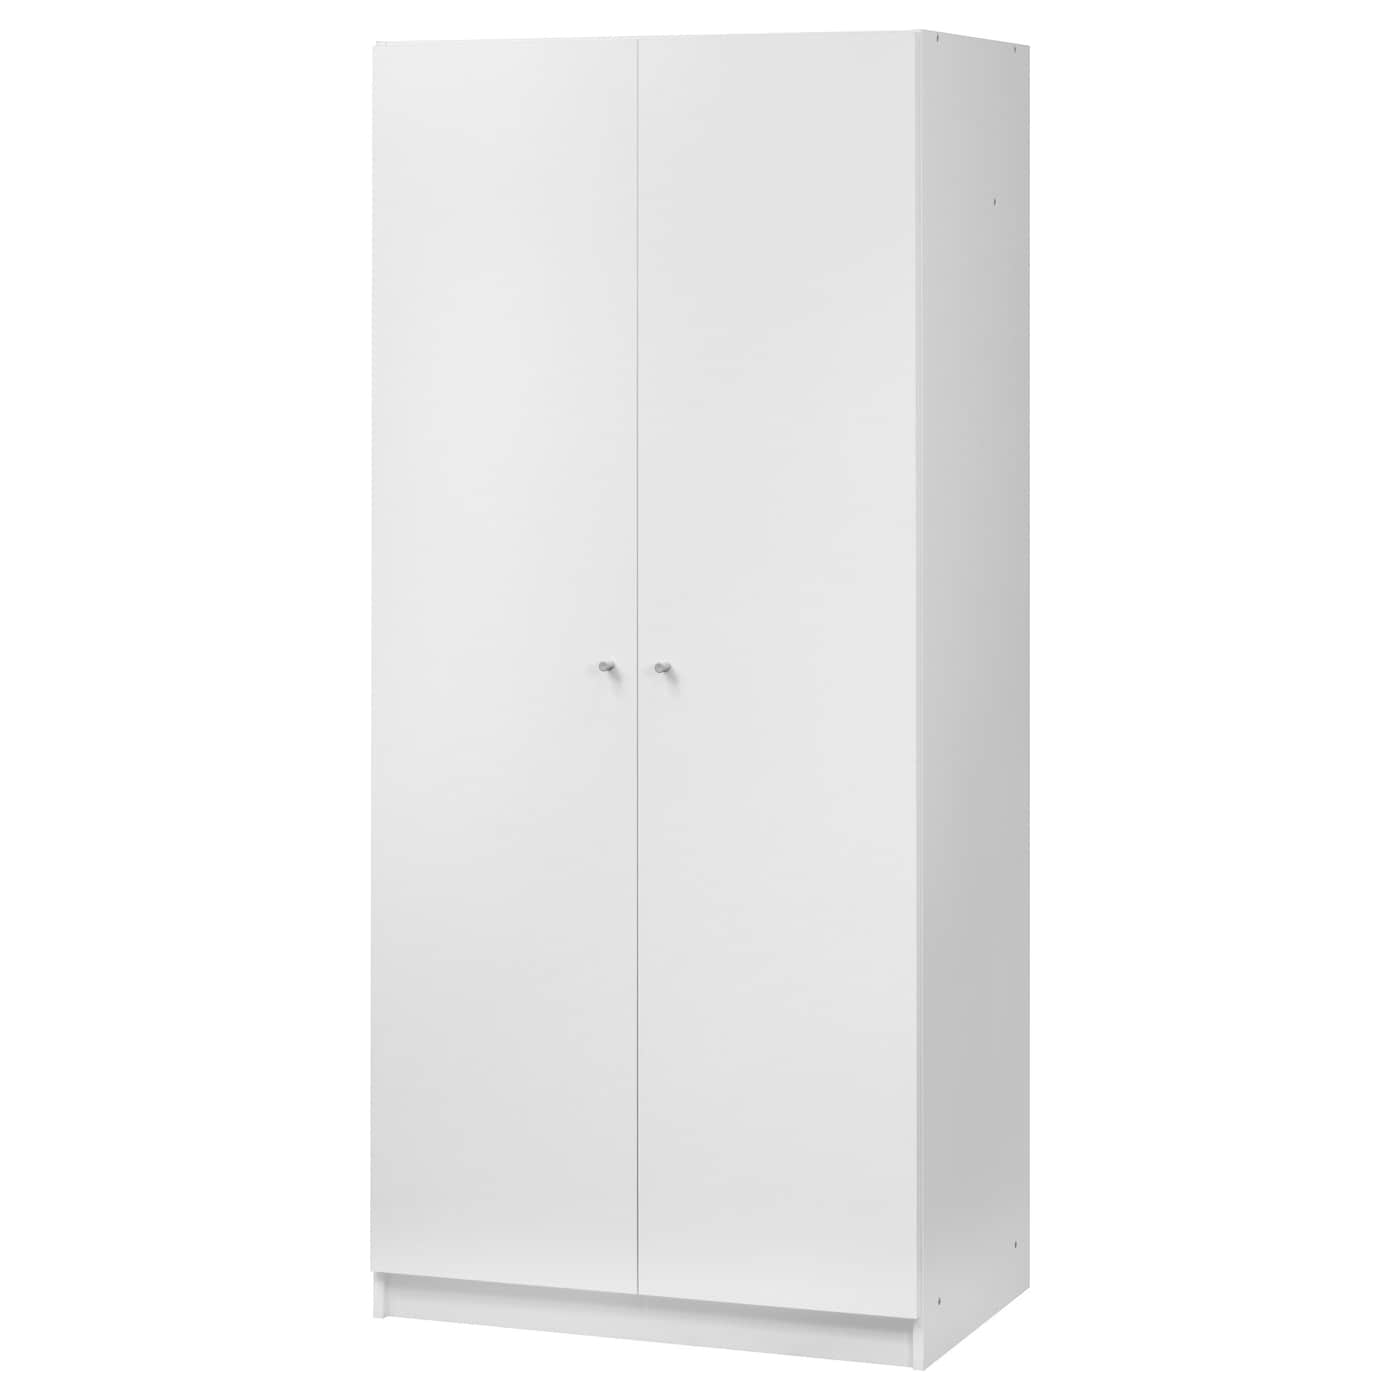 IKEA BOSTRAK wardrobe Adjustable hinges ensure that the doors hang straight.